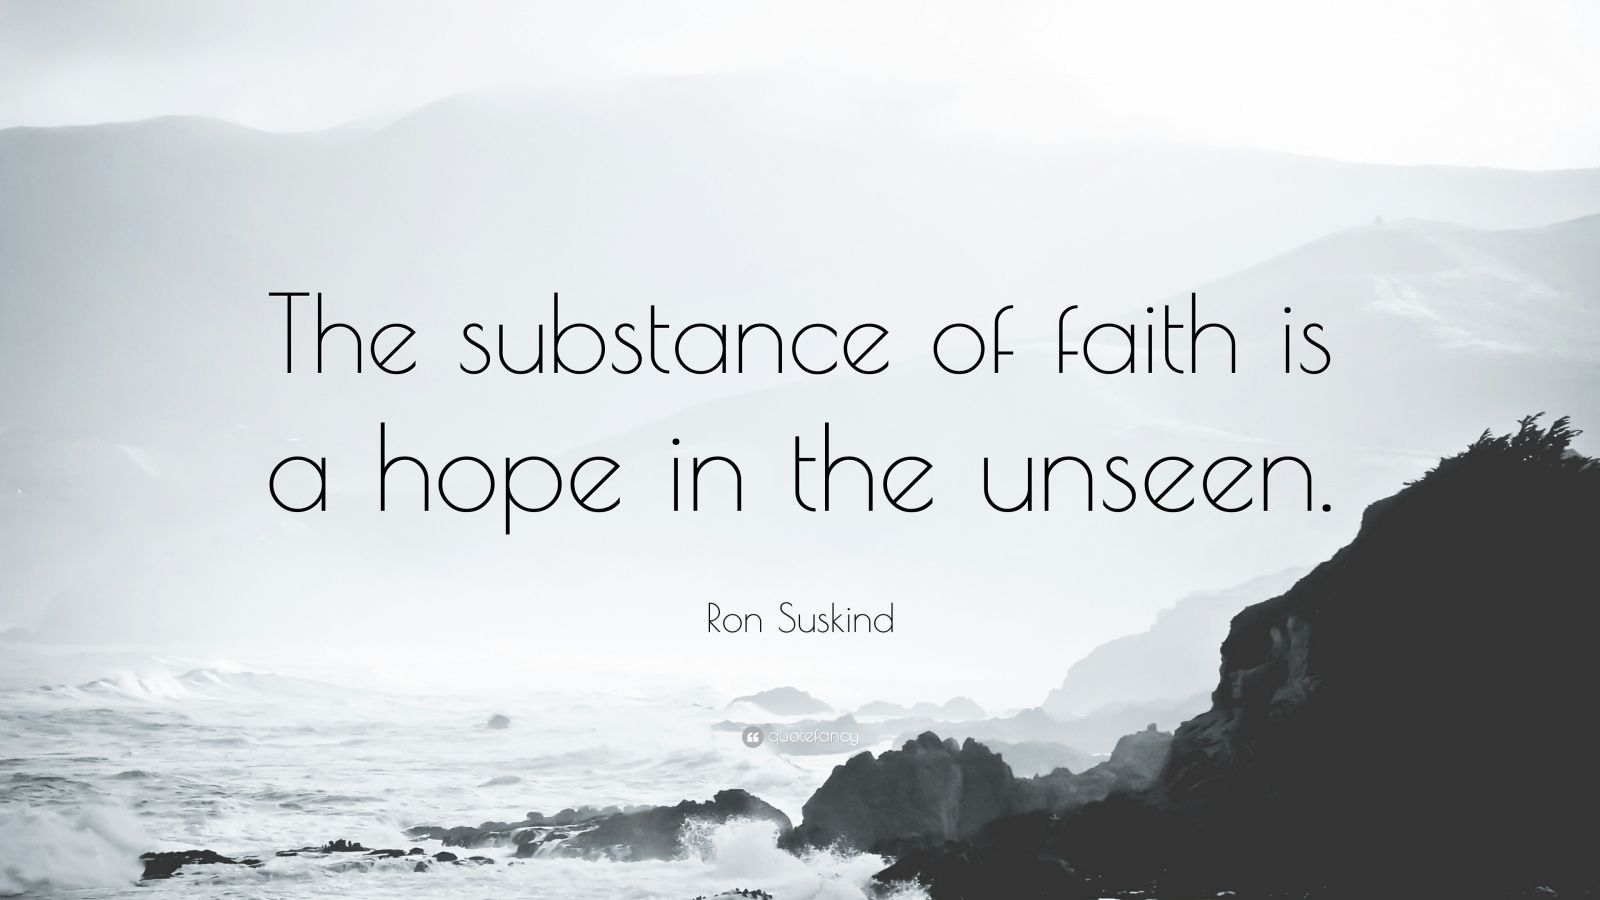 essays on hope in the unseen A hope in the unseen (full title a hope in the unseen: an american odyssey from the inner city to the ivy league) is the first book by author and journalist ron suskind, published in 1998.